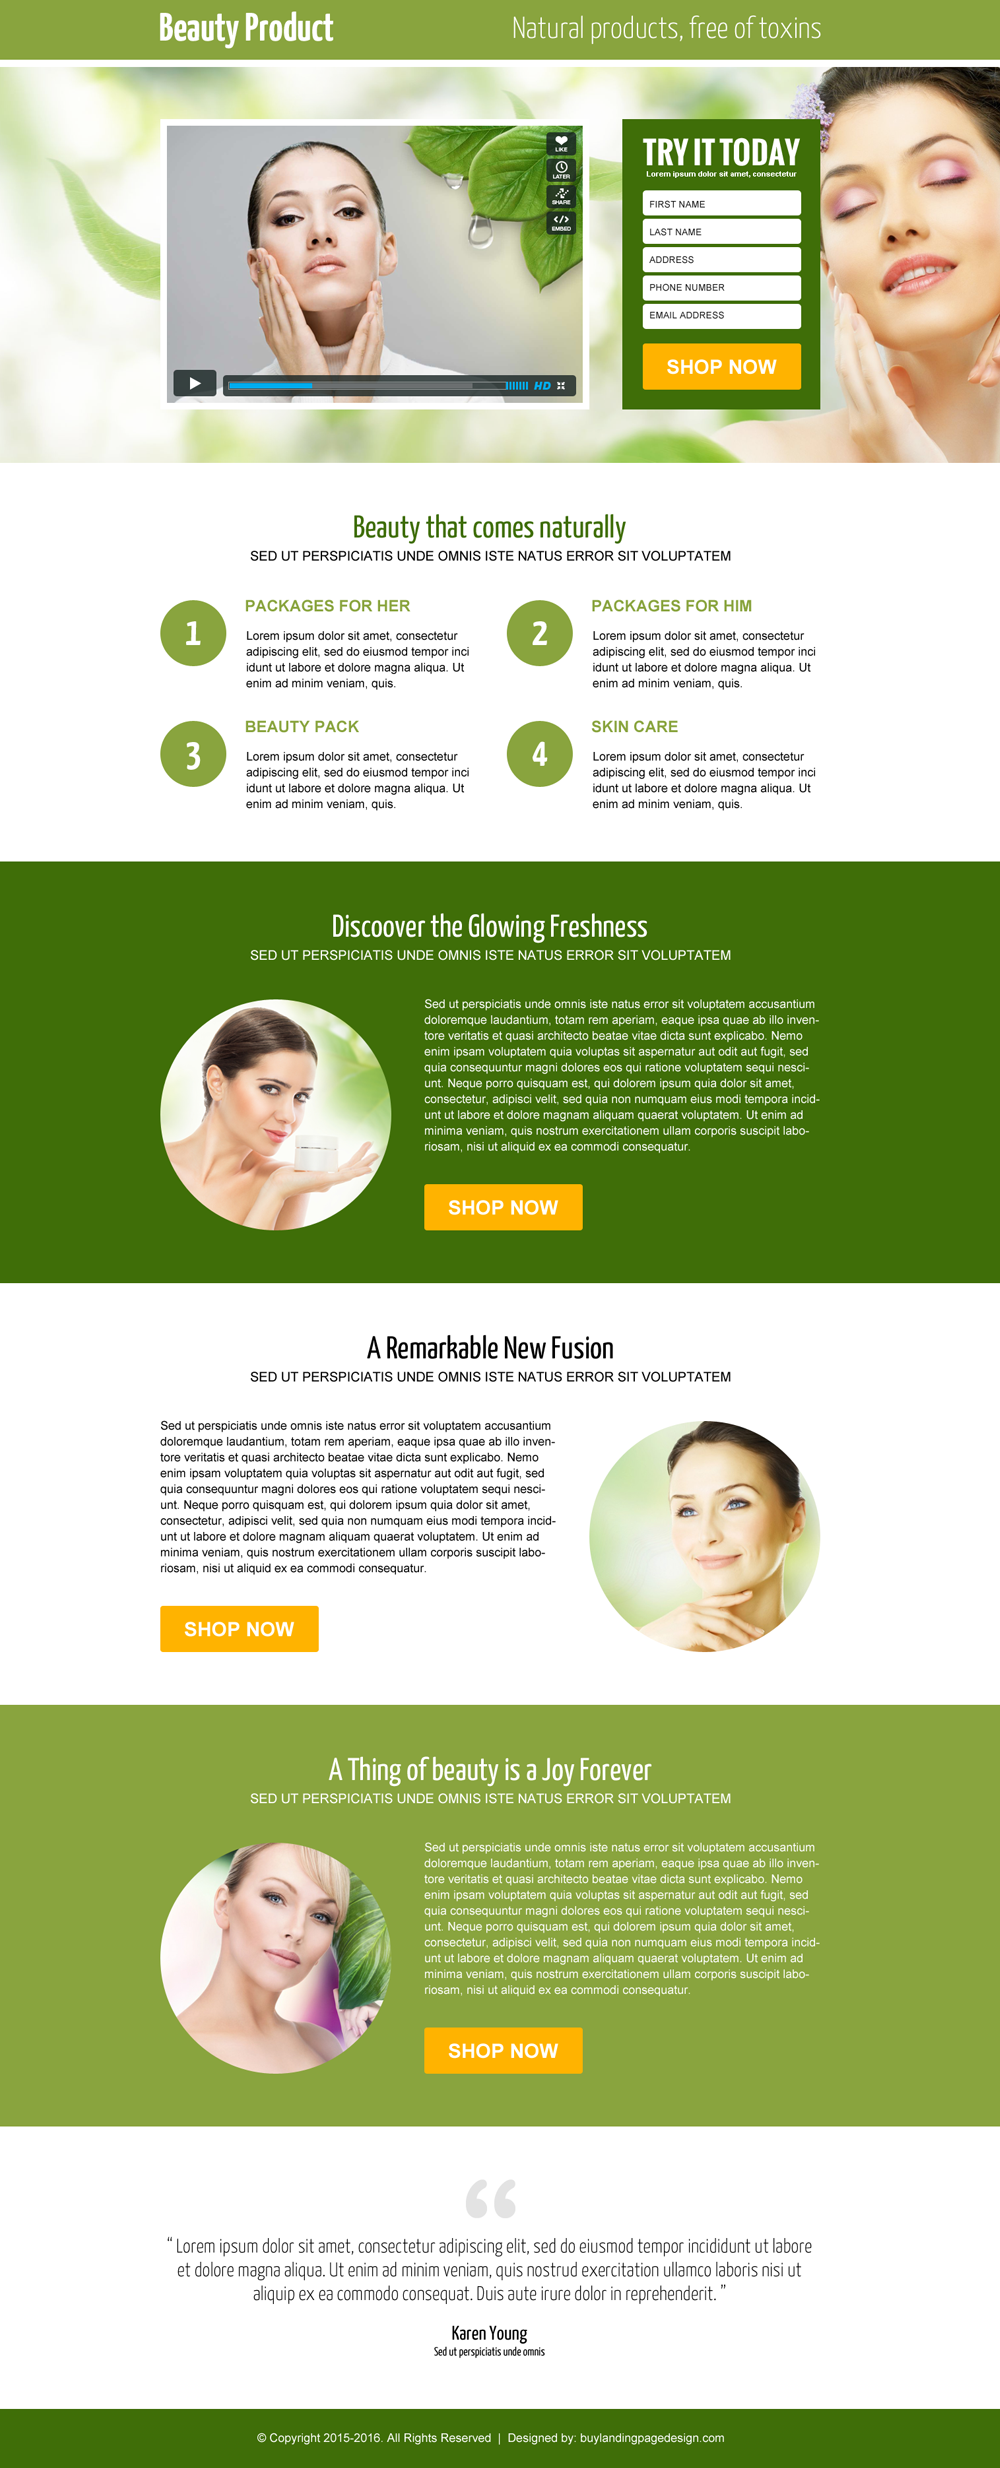 beauty product video lead capture landing page design